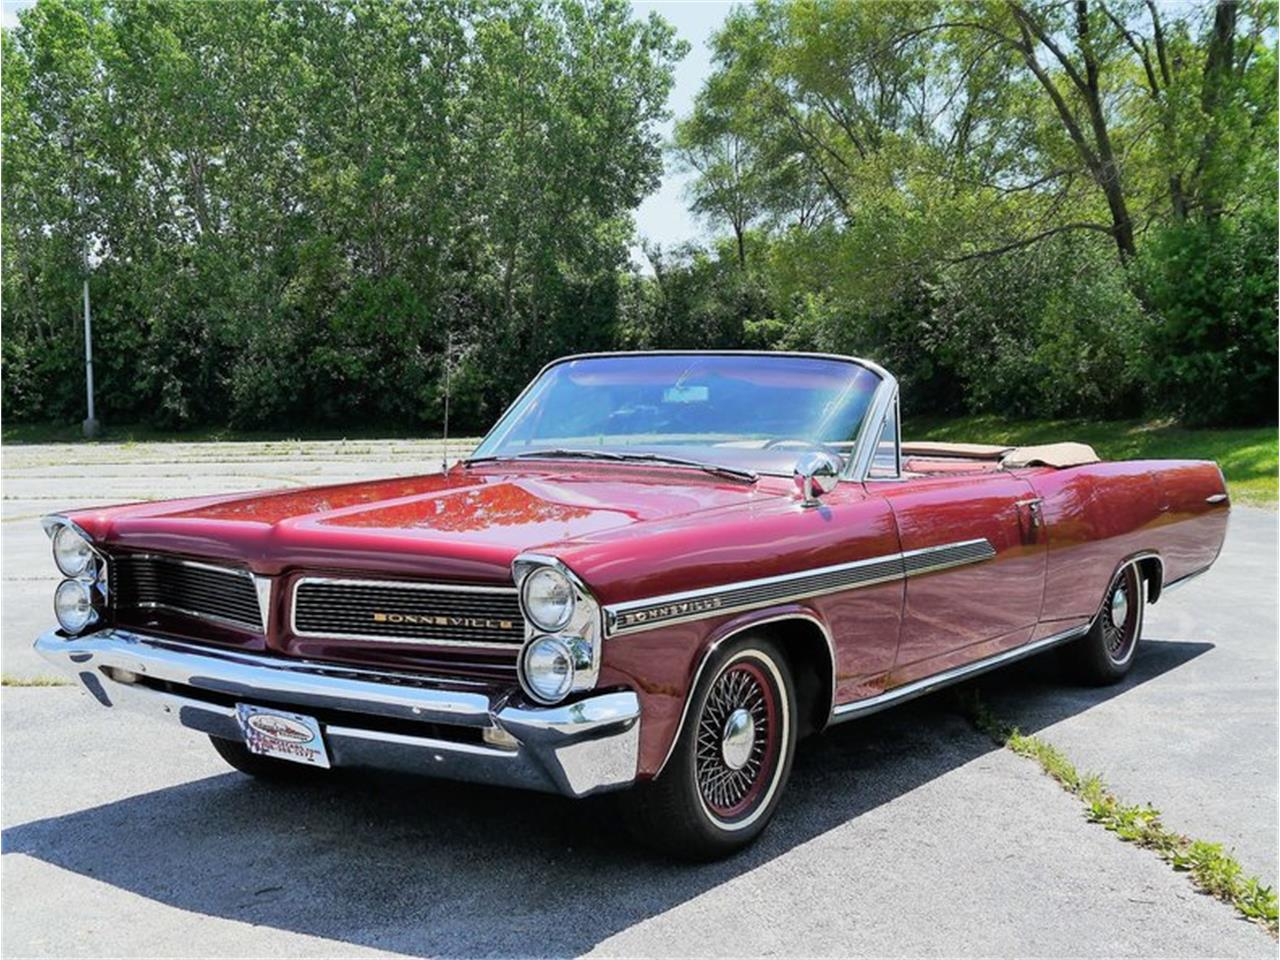 Large Picture of Classic '63 Pontiac Bonneville located in Illinois - $29,900.00 Offered by Midwest Car Exchange - LAZG